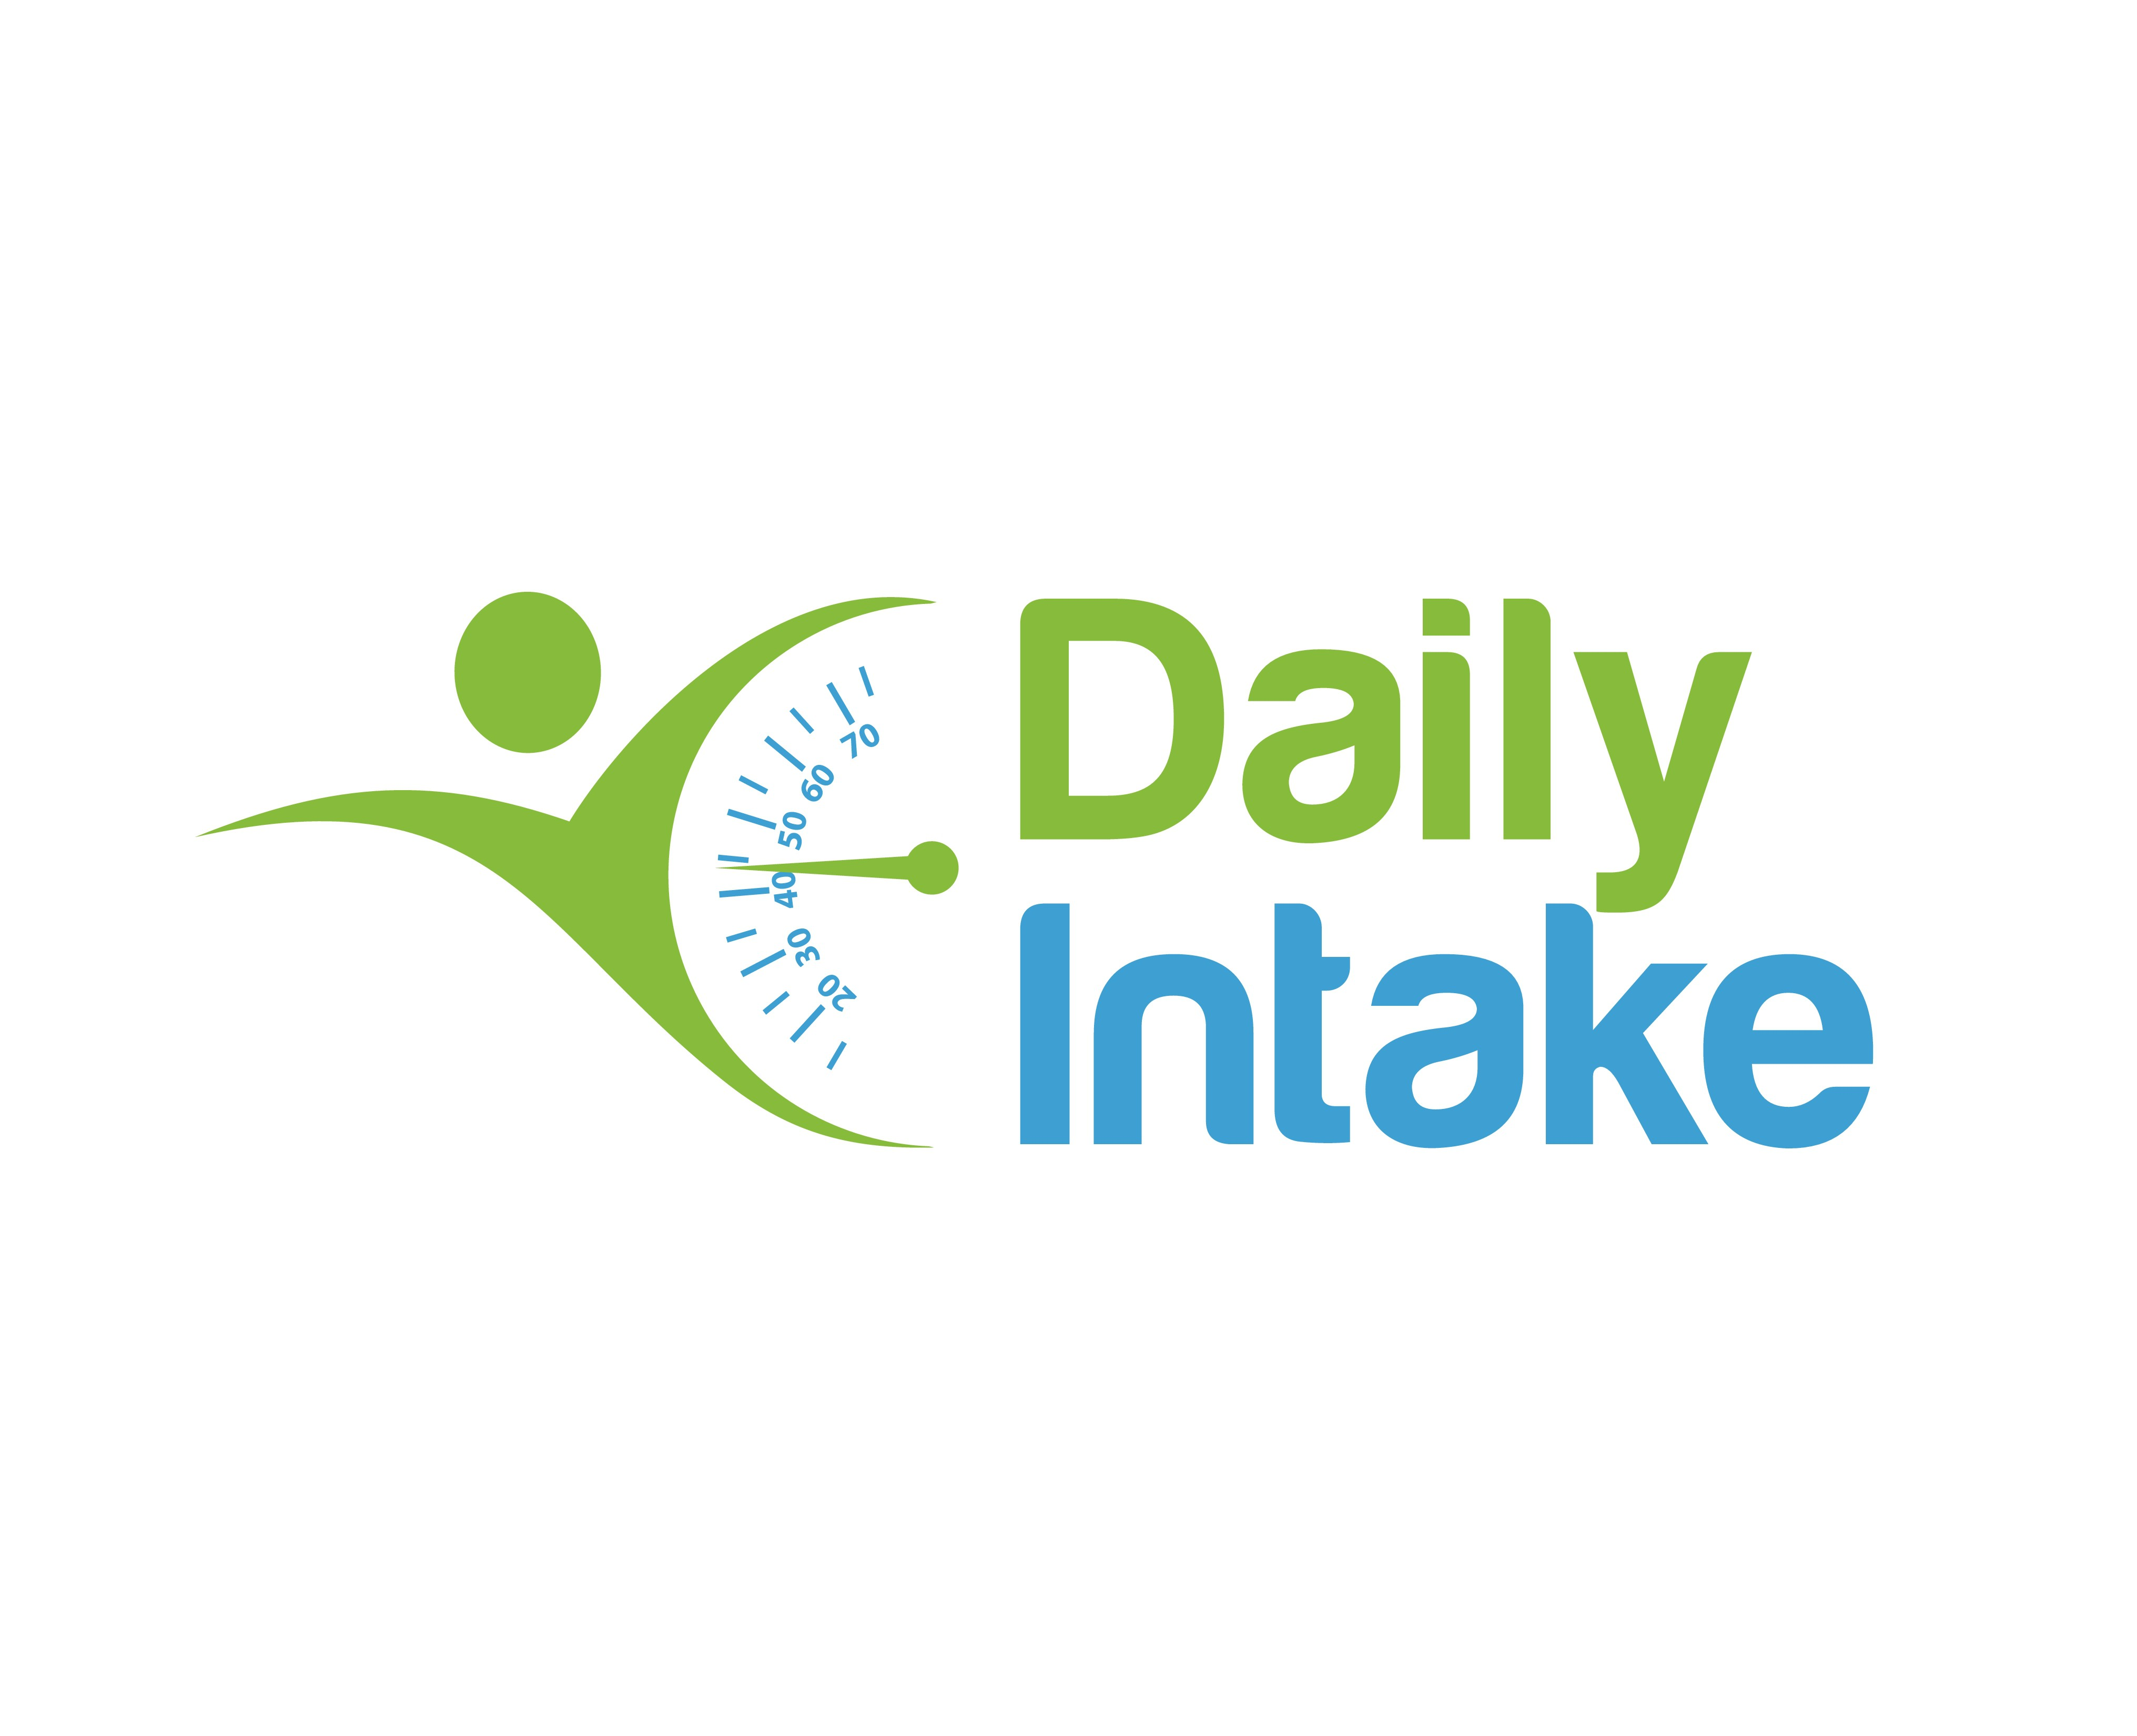 create a  weight loss/diet logo for Daily Intake